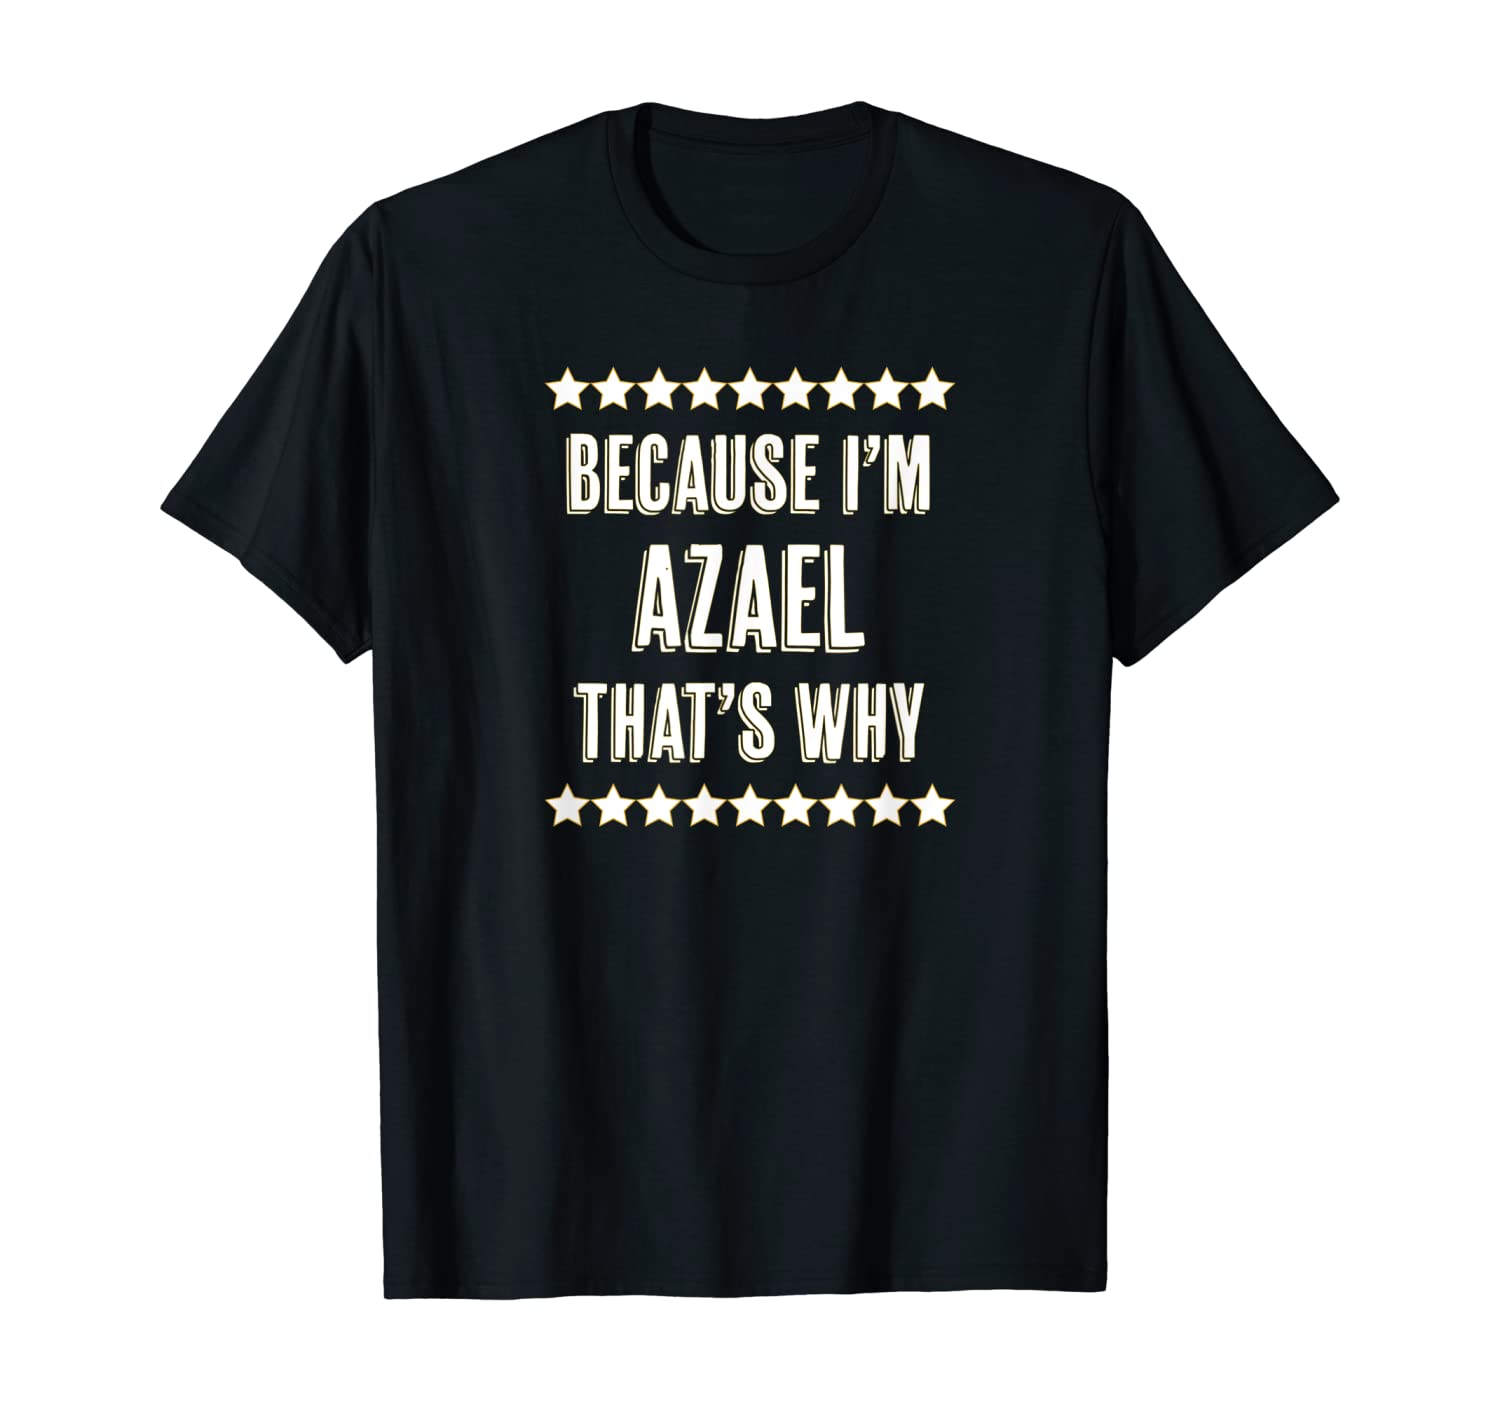 Because I'm - AZAEL - That's Why | Funny Name Gift - T-Shirt